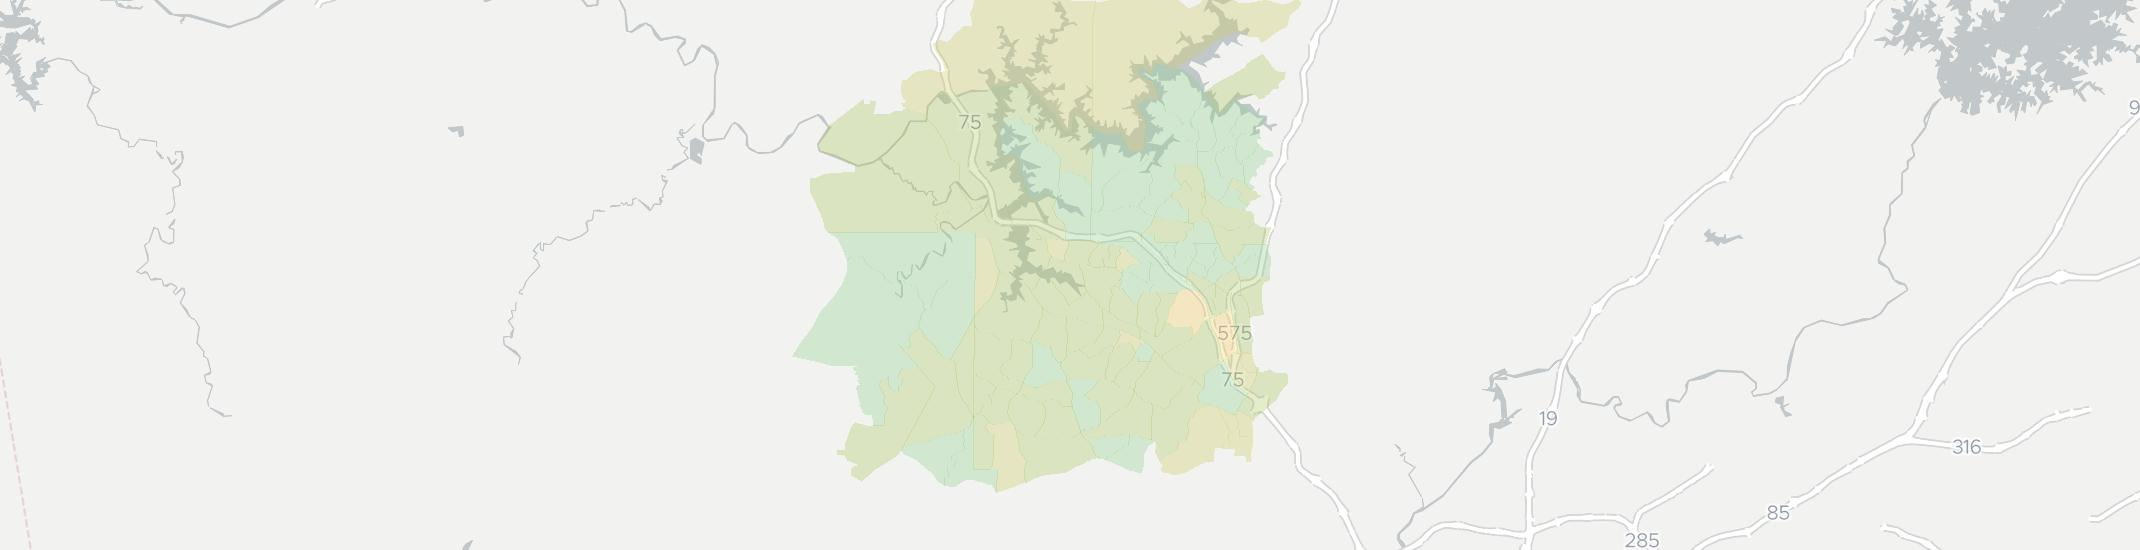 Acworth Internet Competition Map. Click for interactive map.